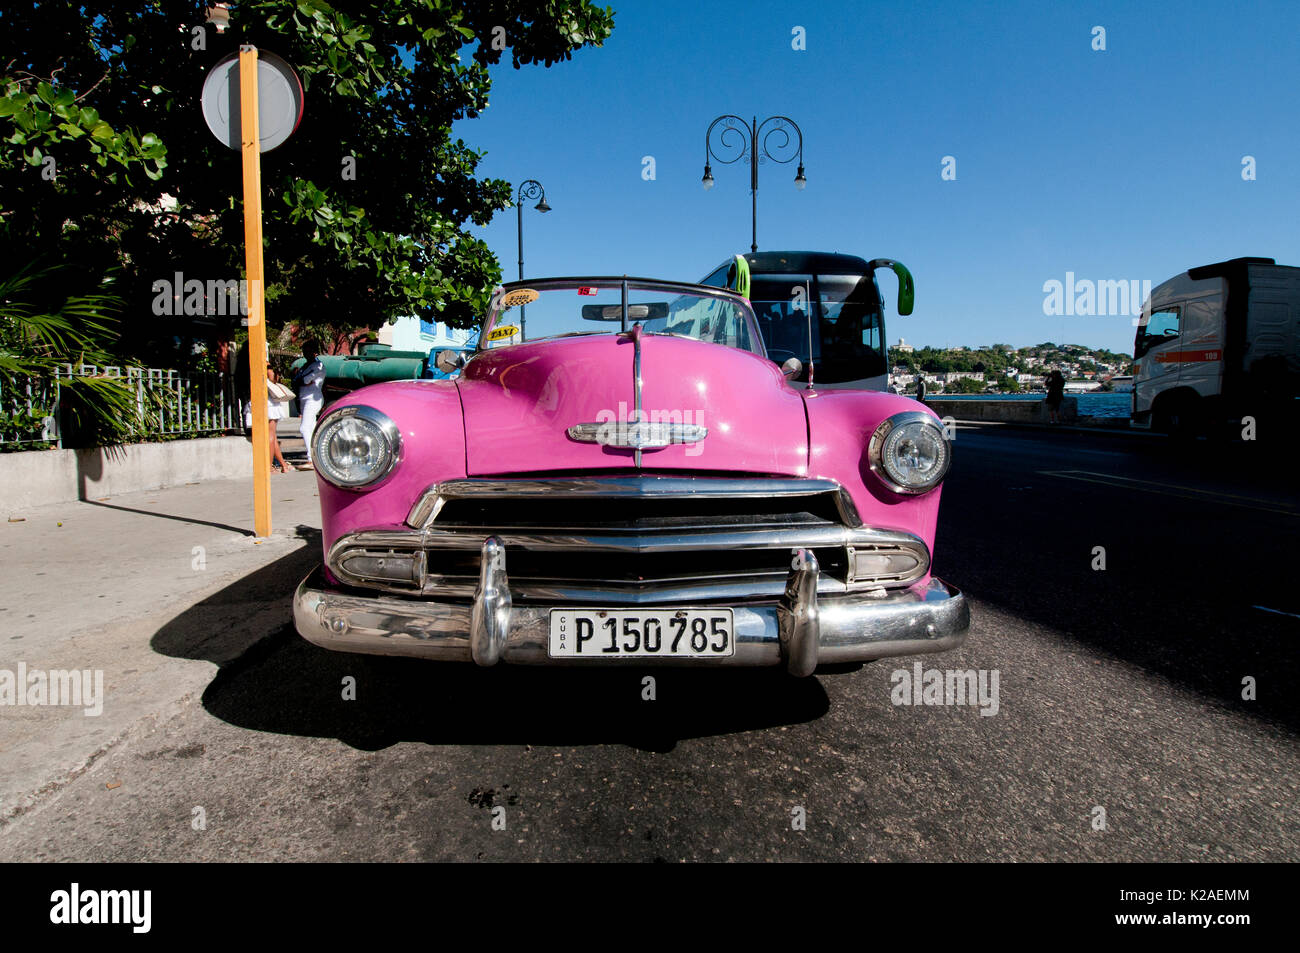 Pink Chevy Convertible Stock Photos & Pink Chevy Convertible Stock ...